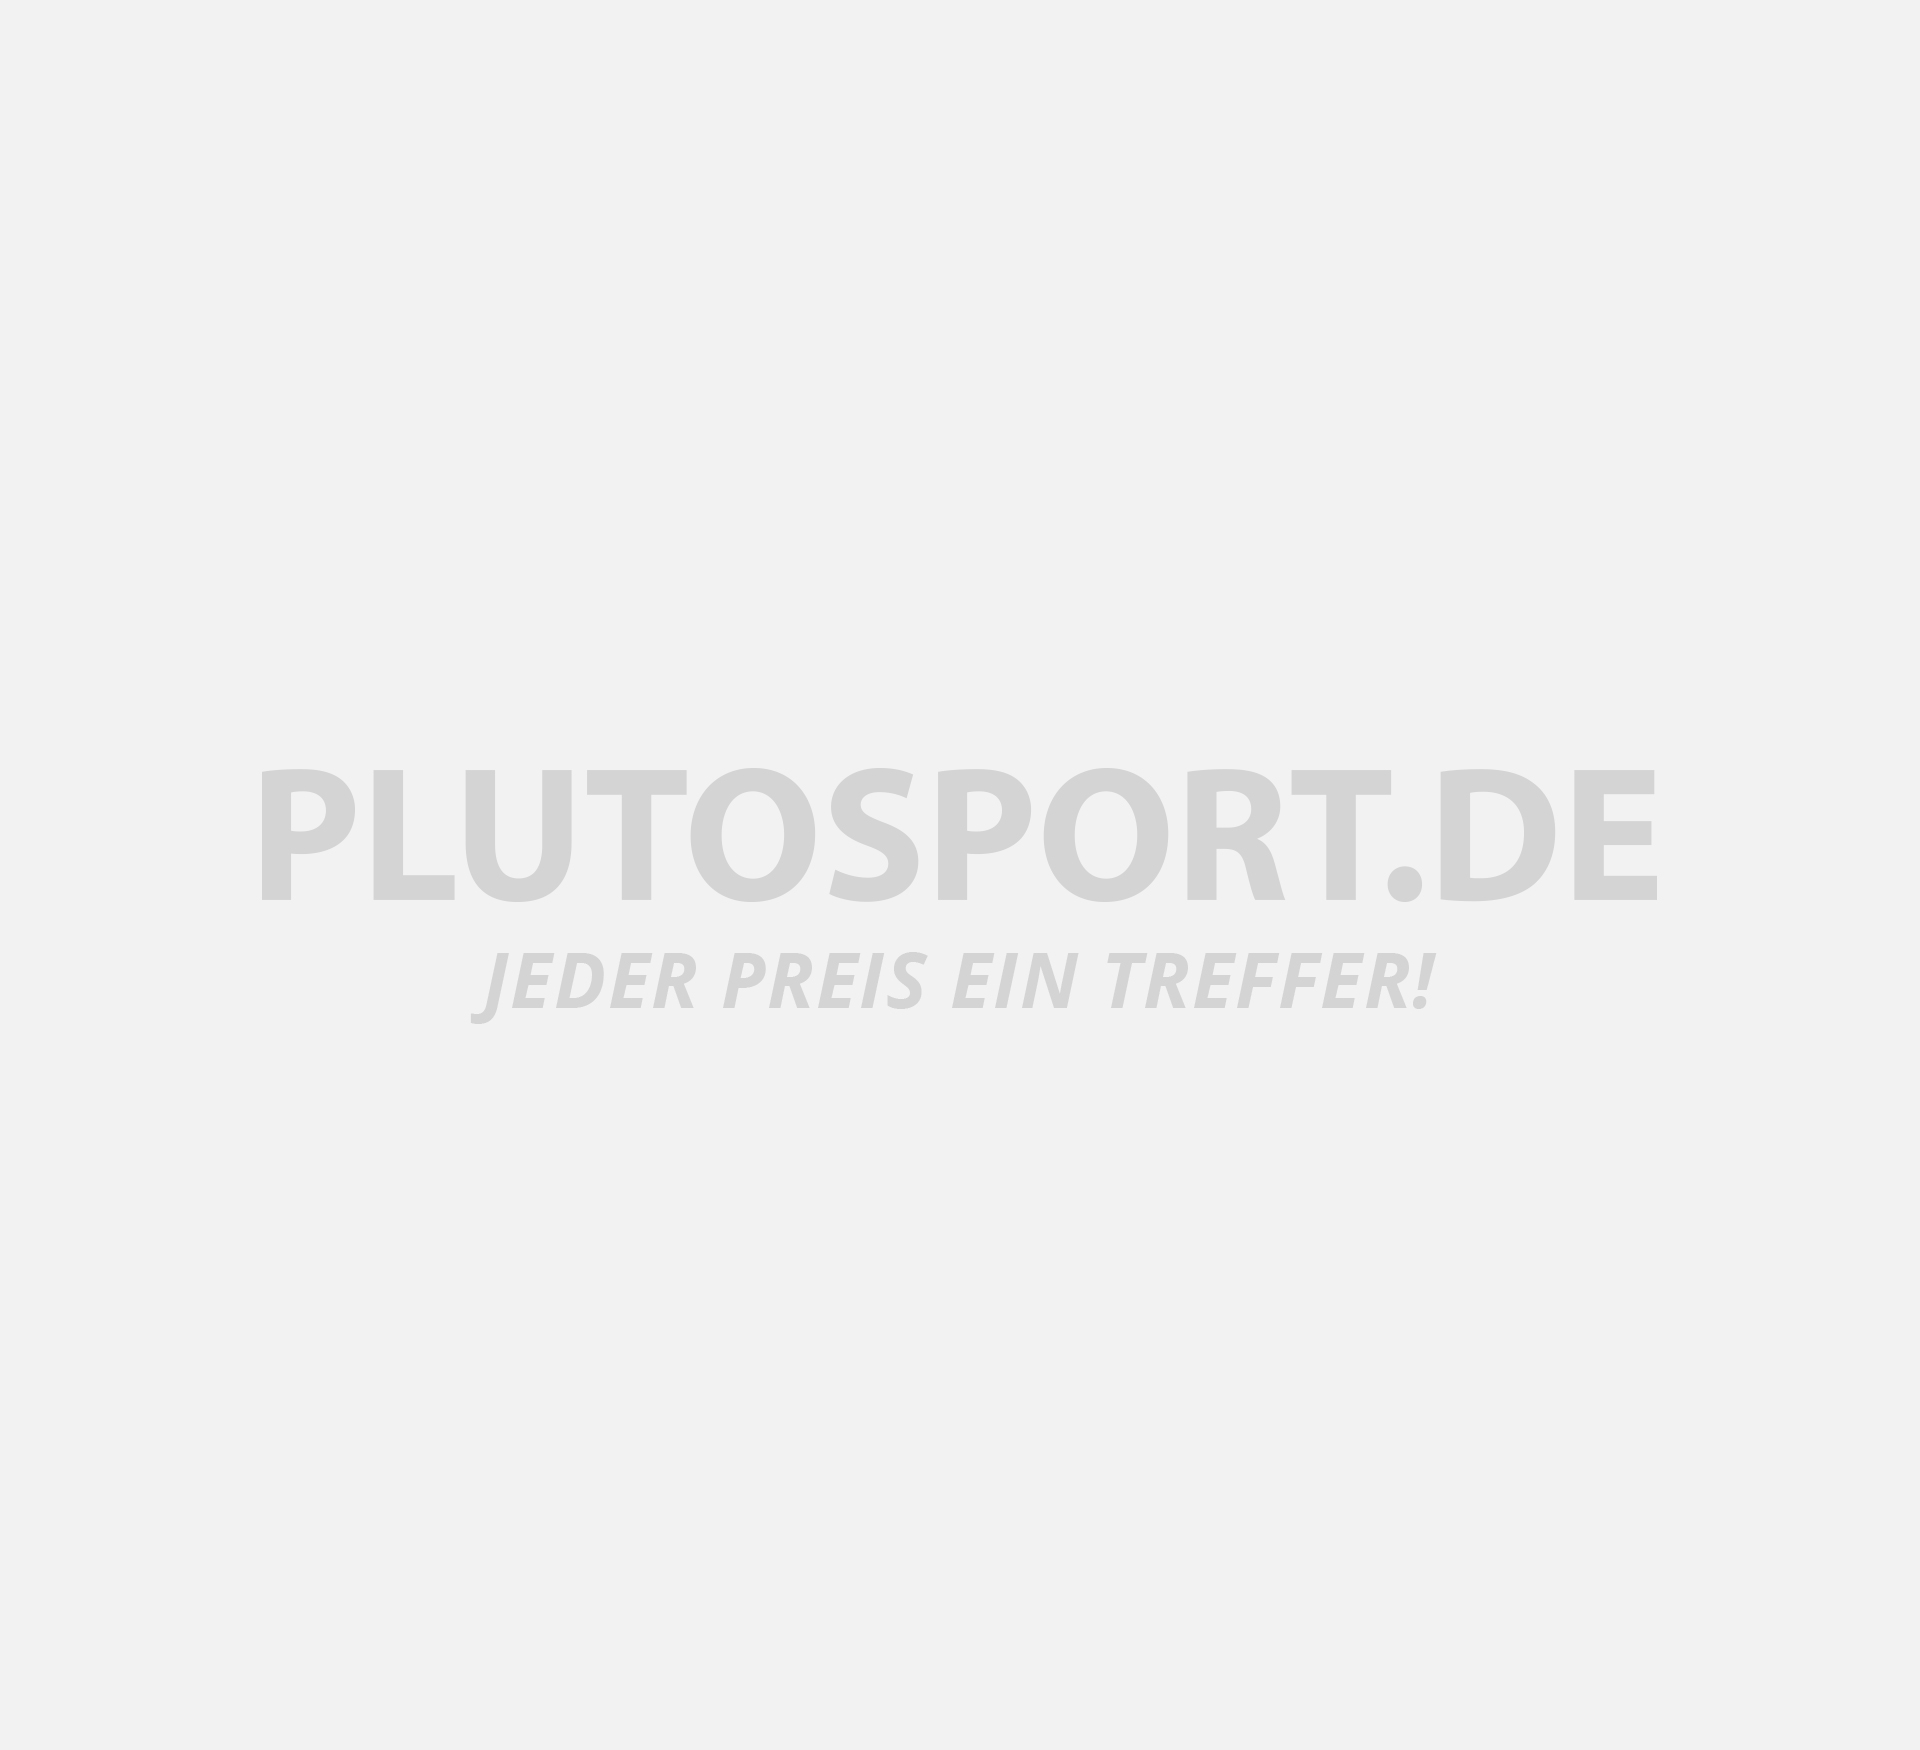 Aqua Lung Sport Cozumel Seabreeze Schnorchel Set Senior